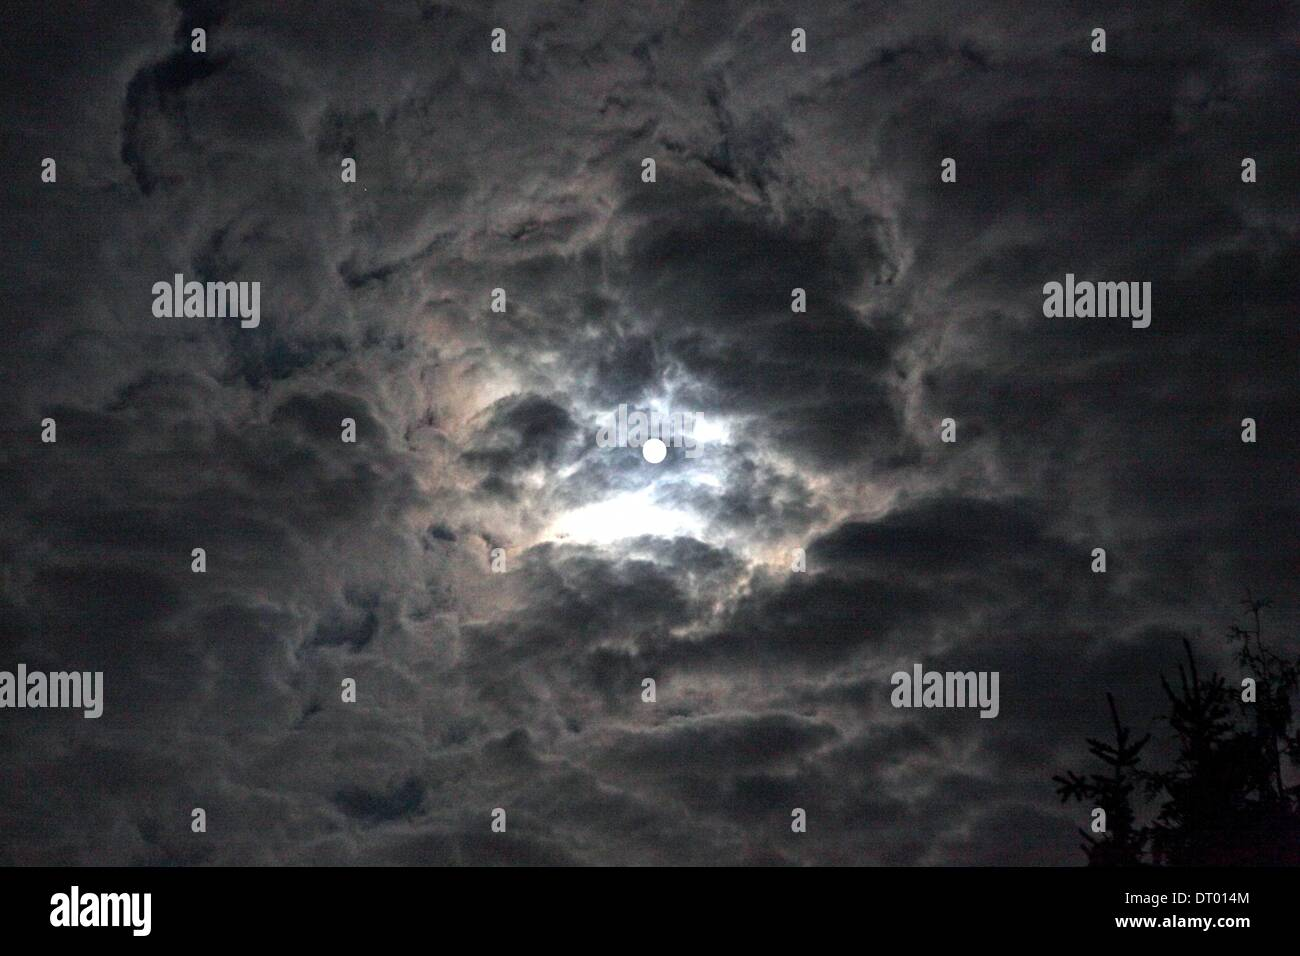 Full moon shining through clouds, Germany, Apr. 16, 2011. - Stock Image